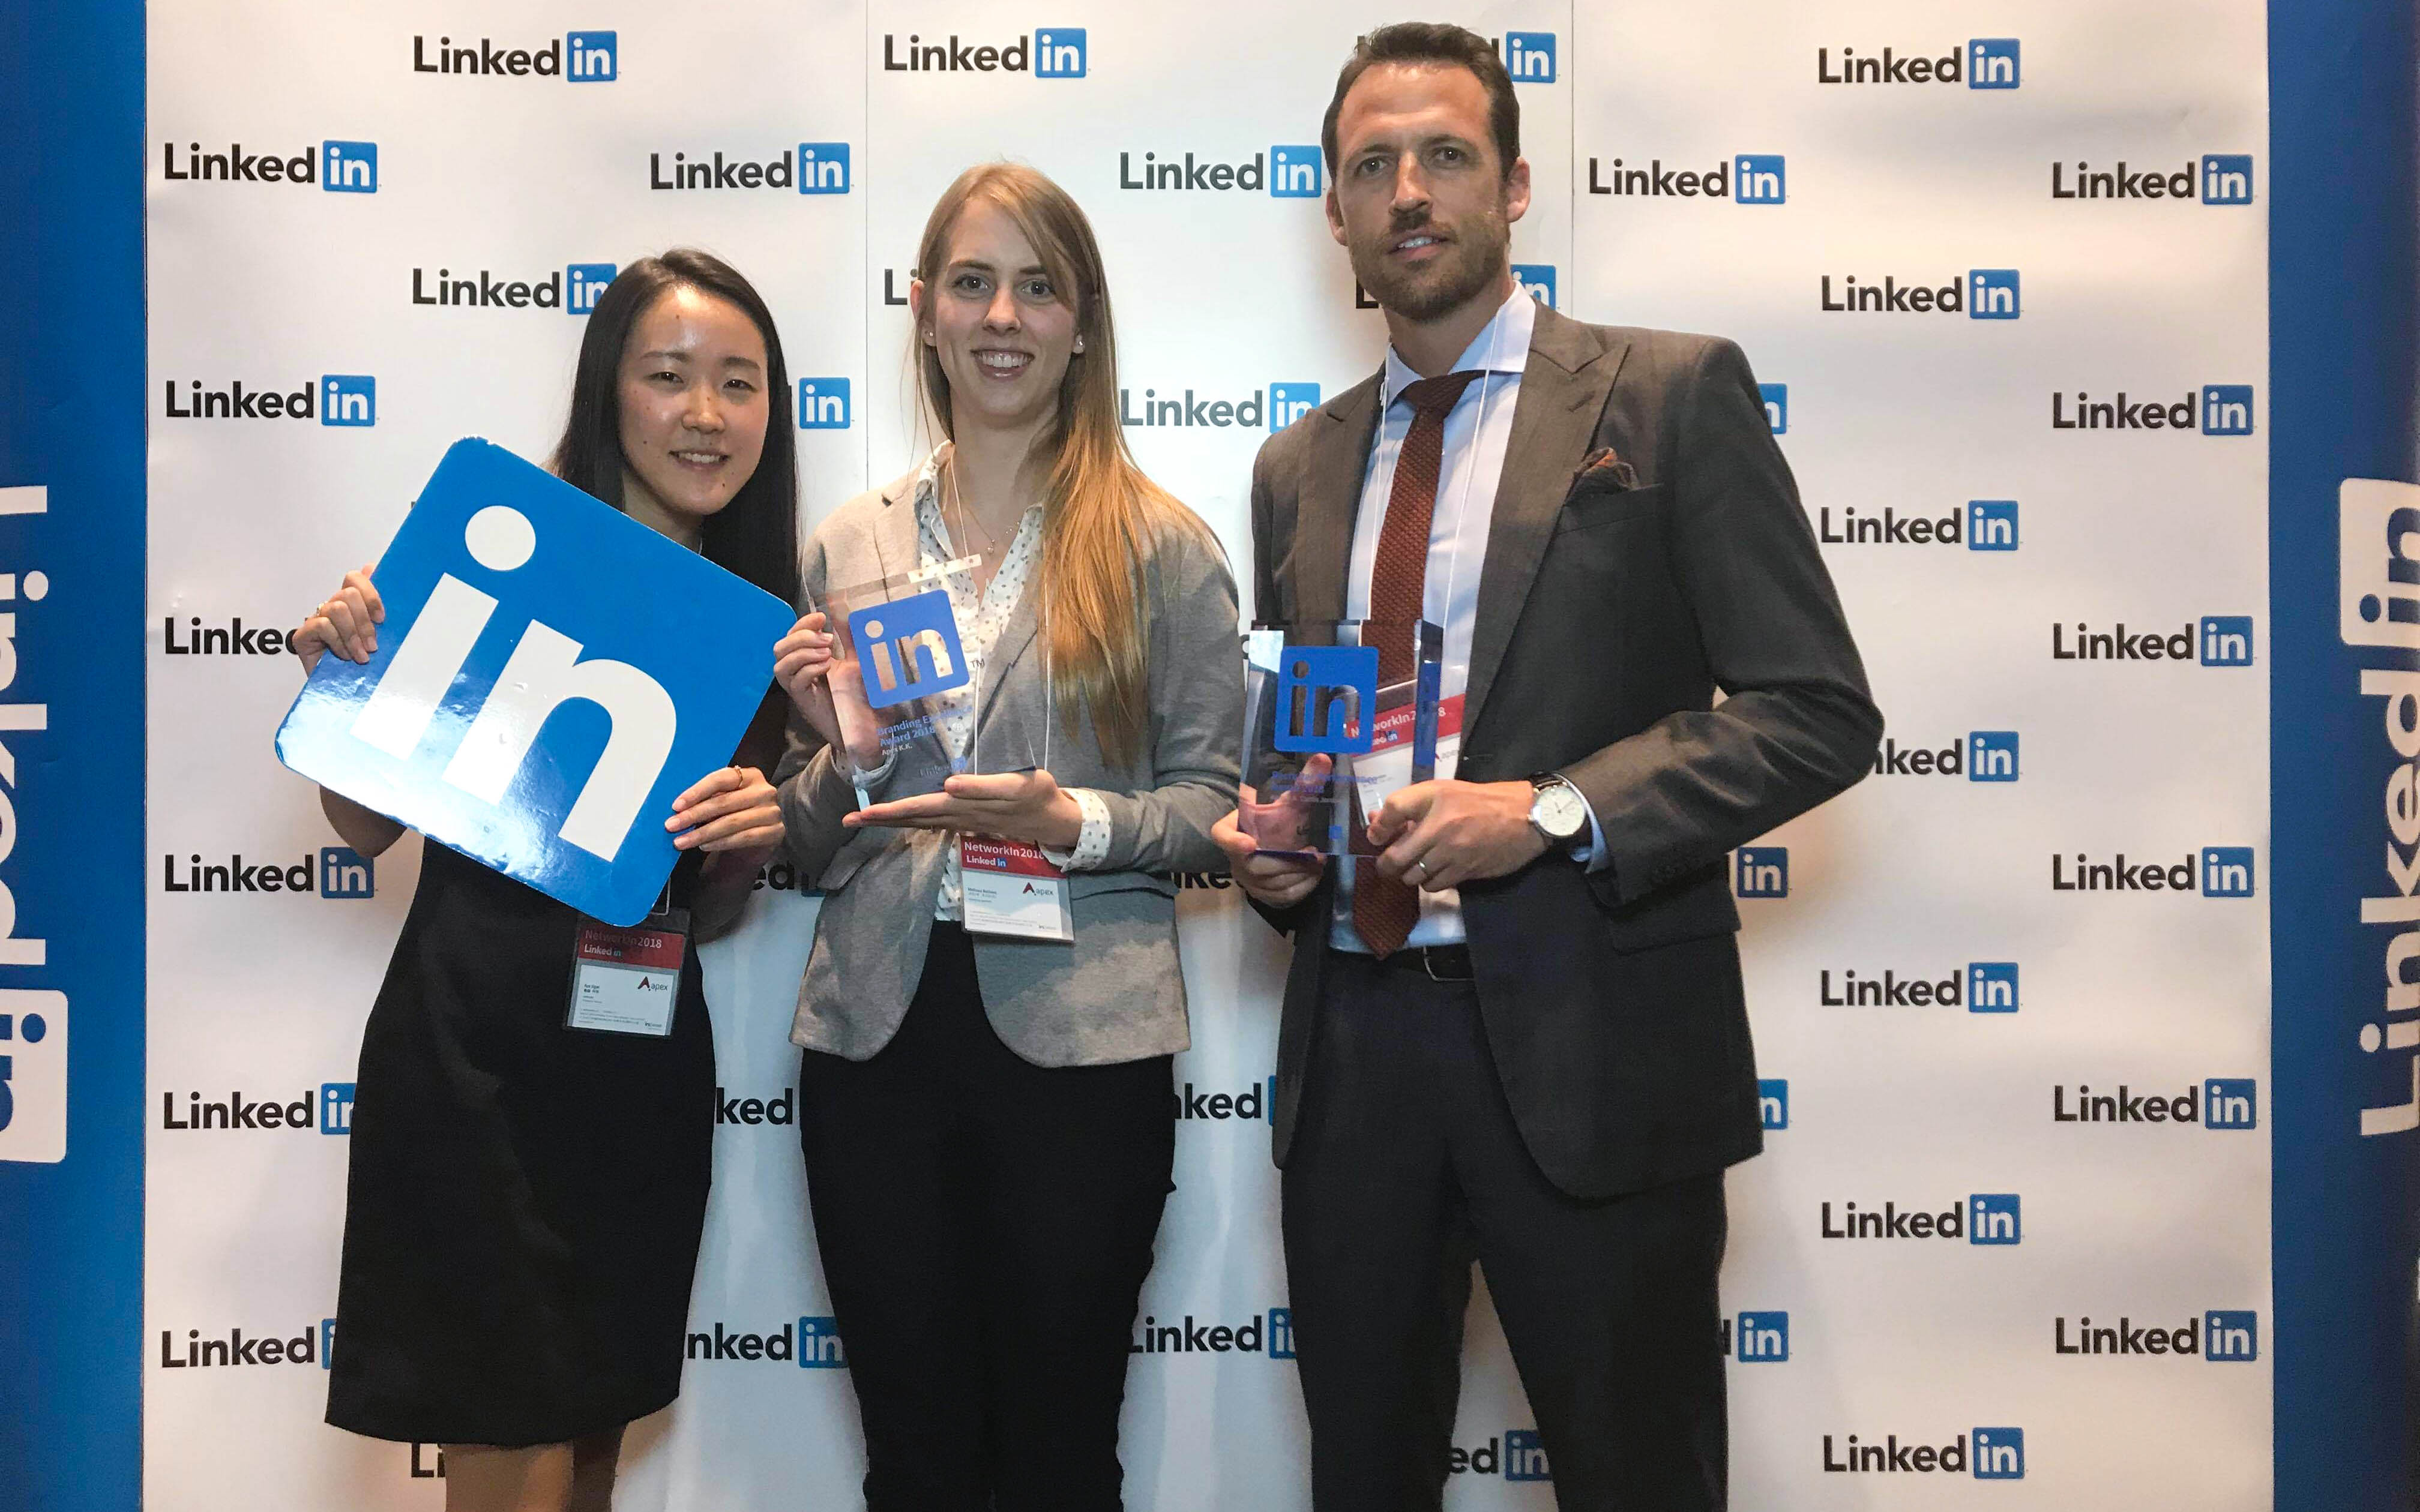 linkedin awards